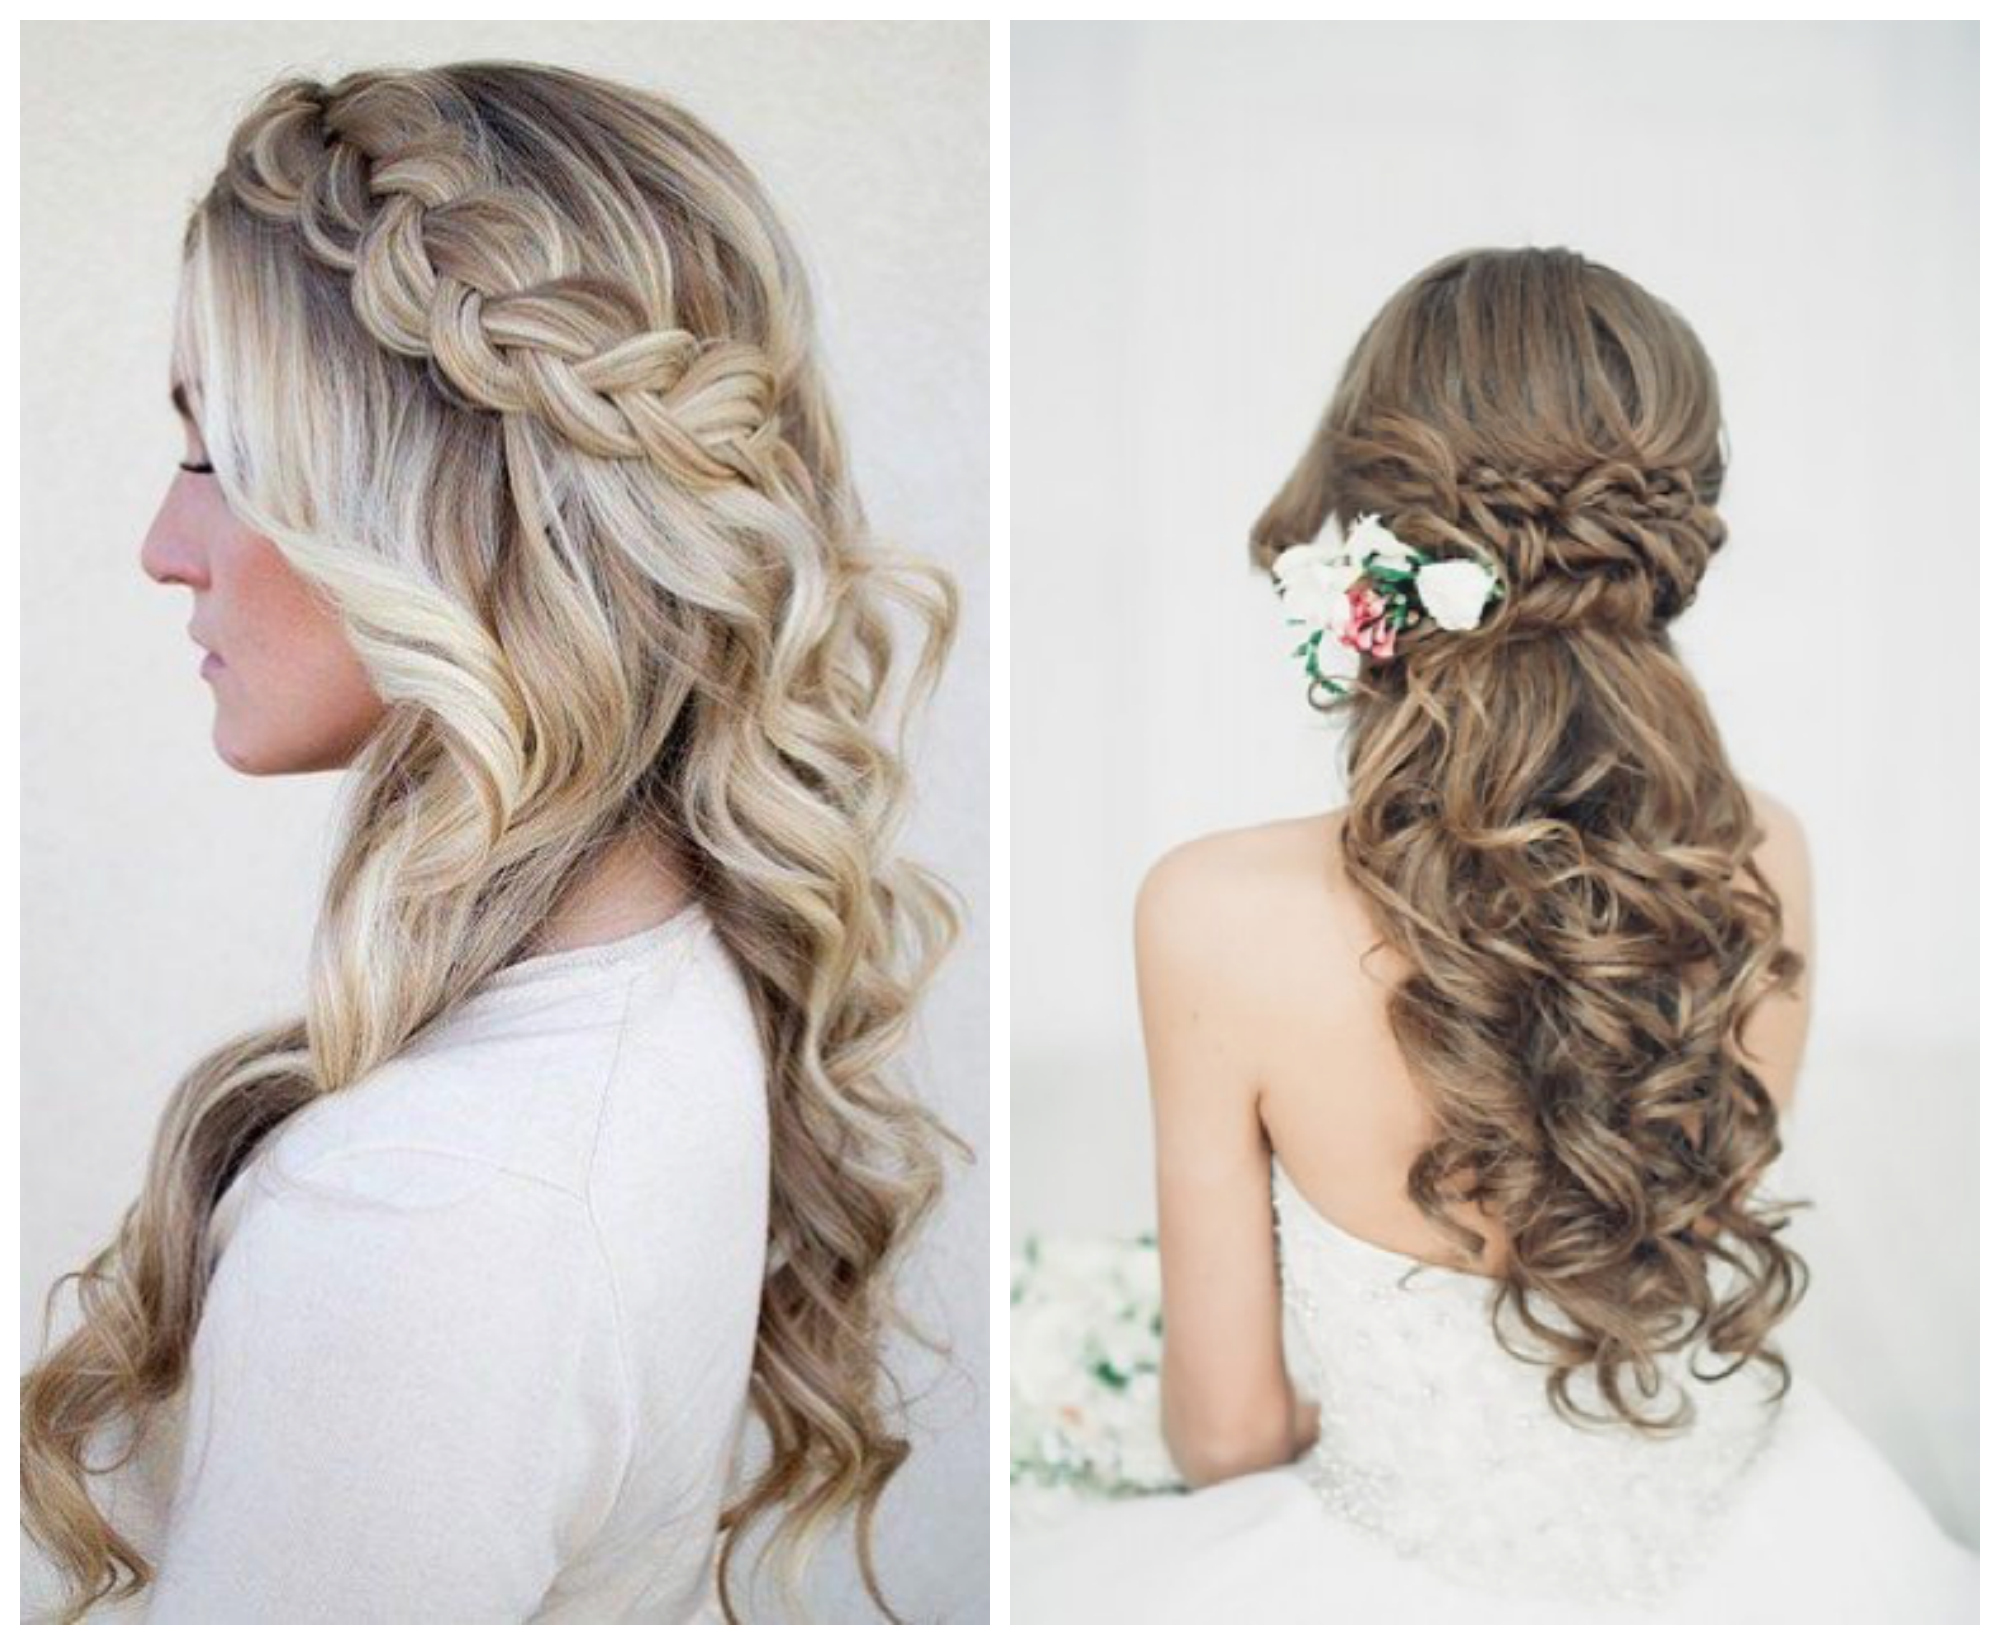 5 Bridal Hairstyles For Your Wedding Day | Azazie | Blog